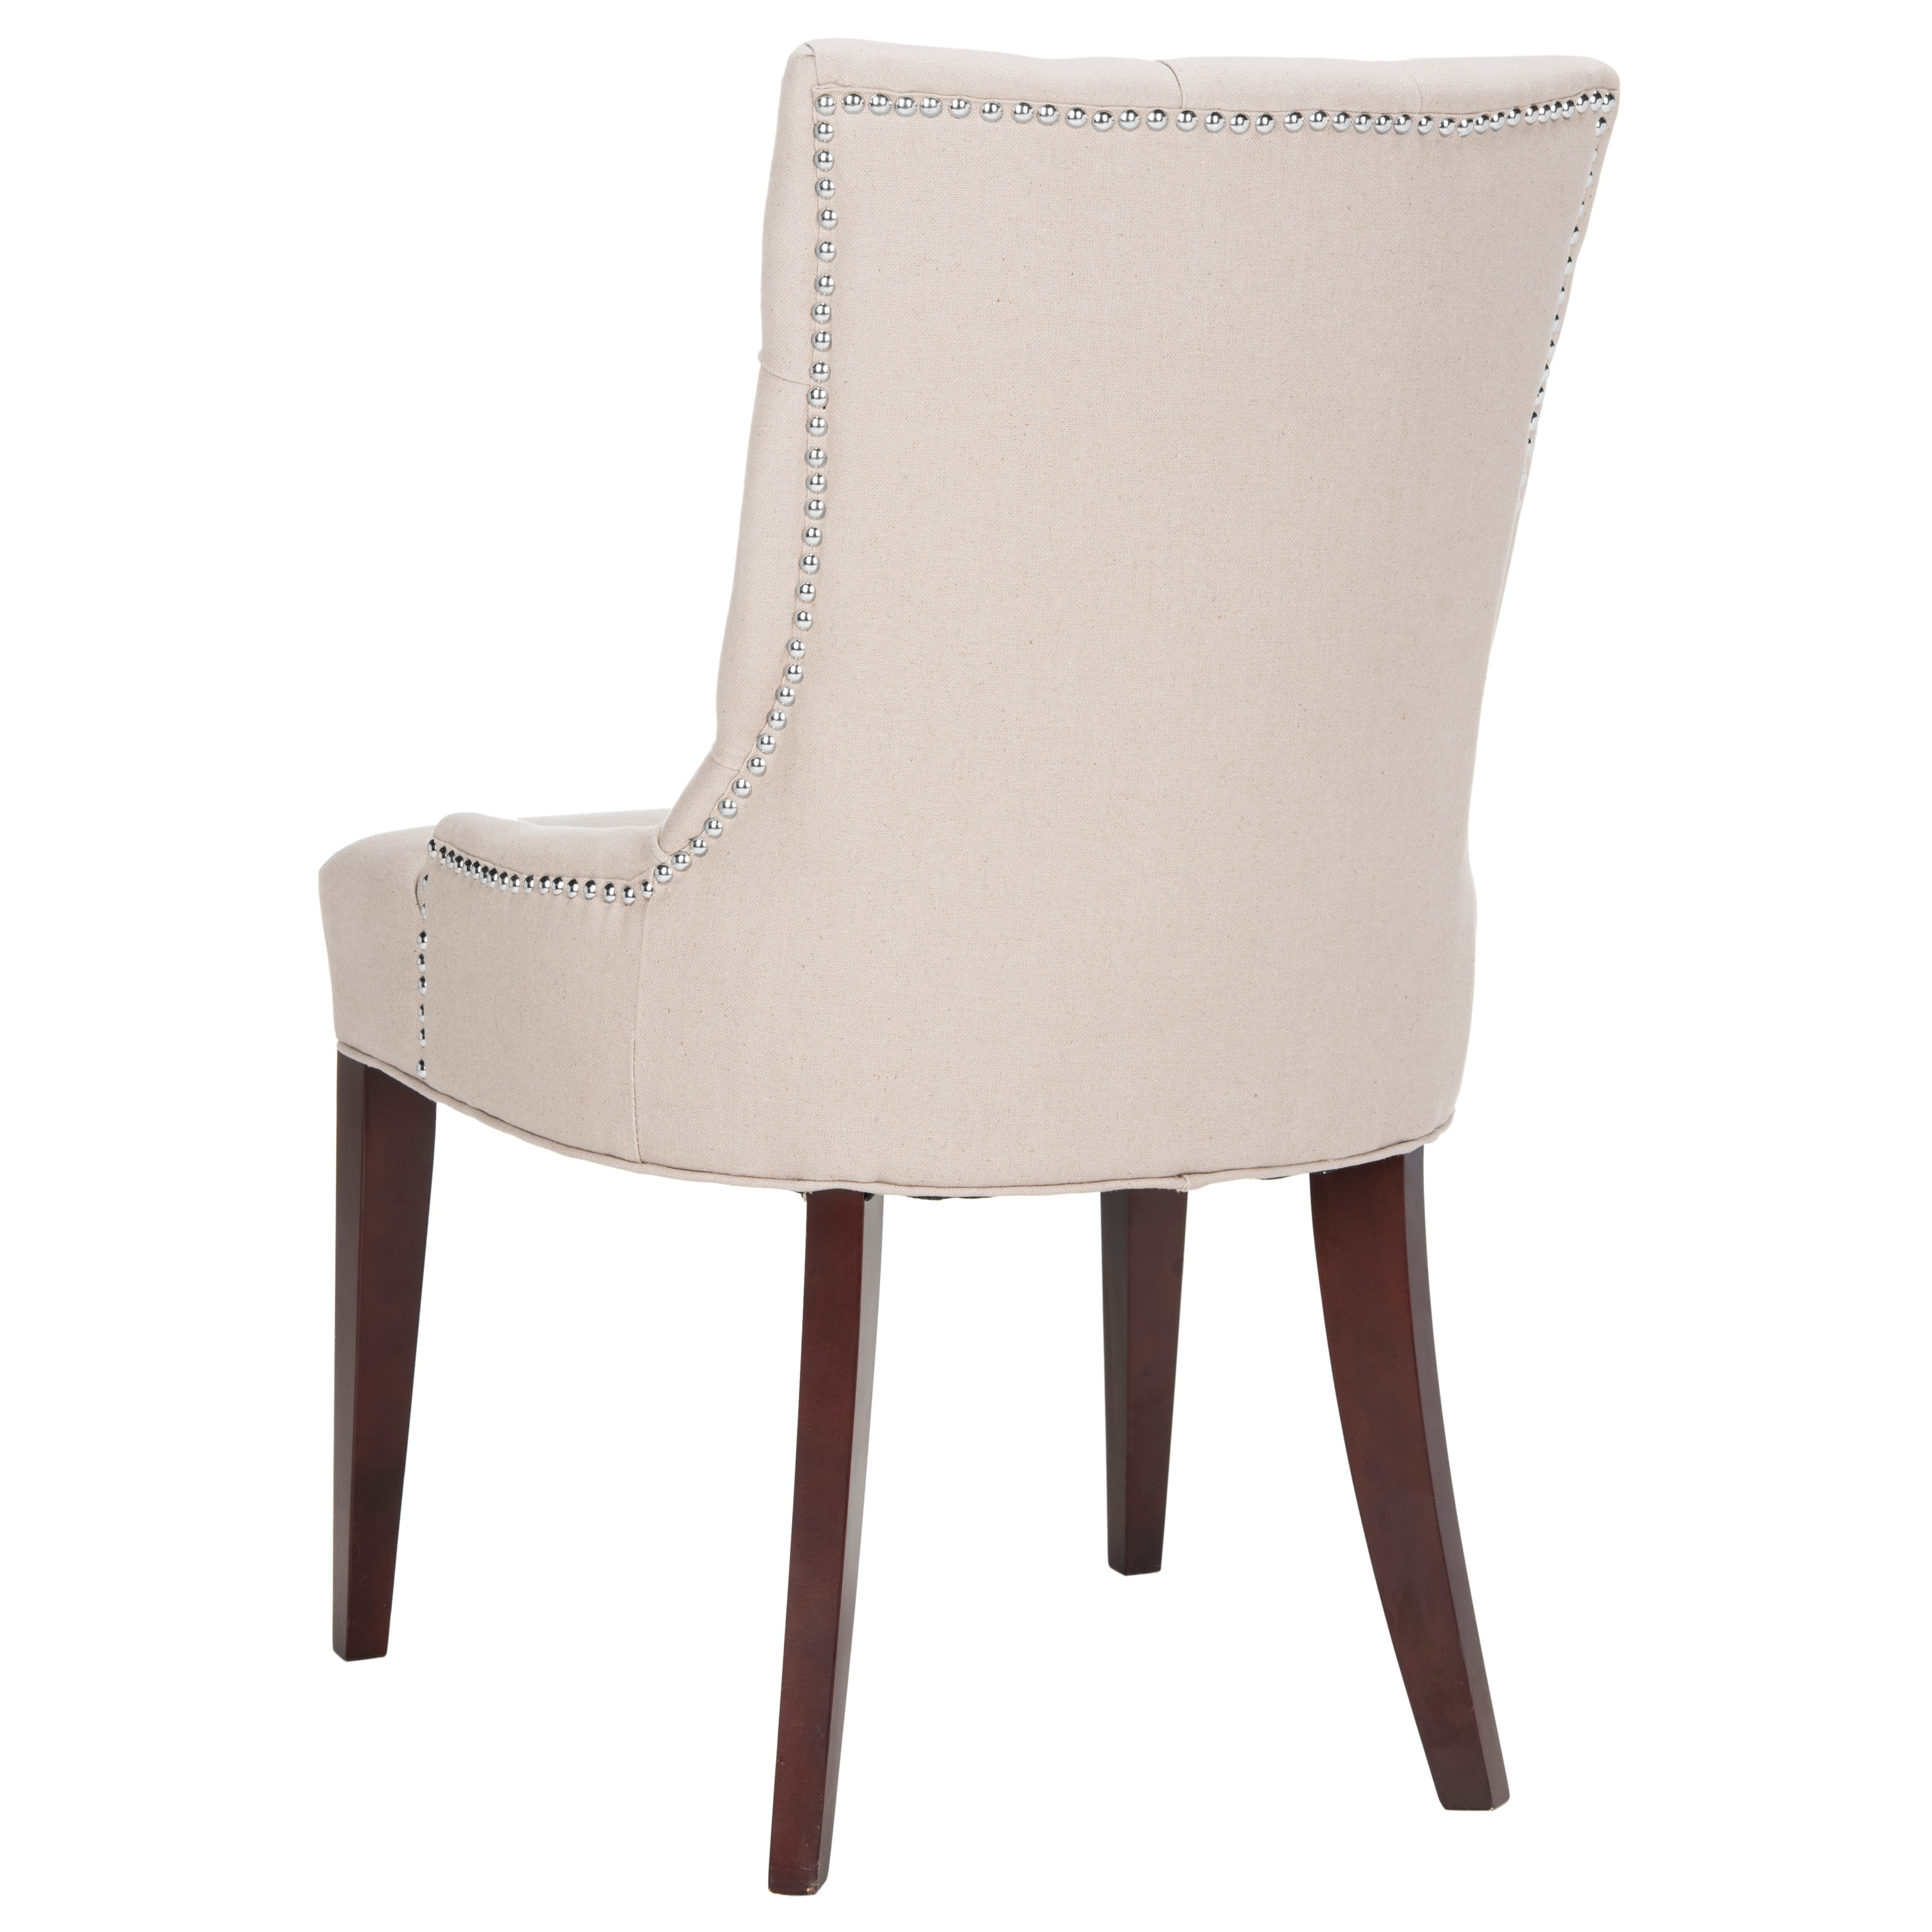 Safavieh En Vogue Dining Nimes Putty Grey Dining Chair   Free Shipping  Today   Overstock   12897848